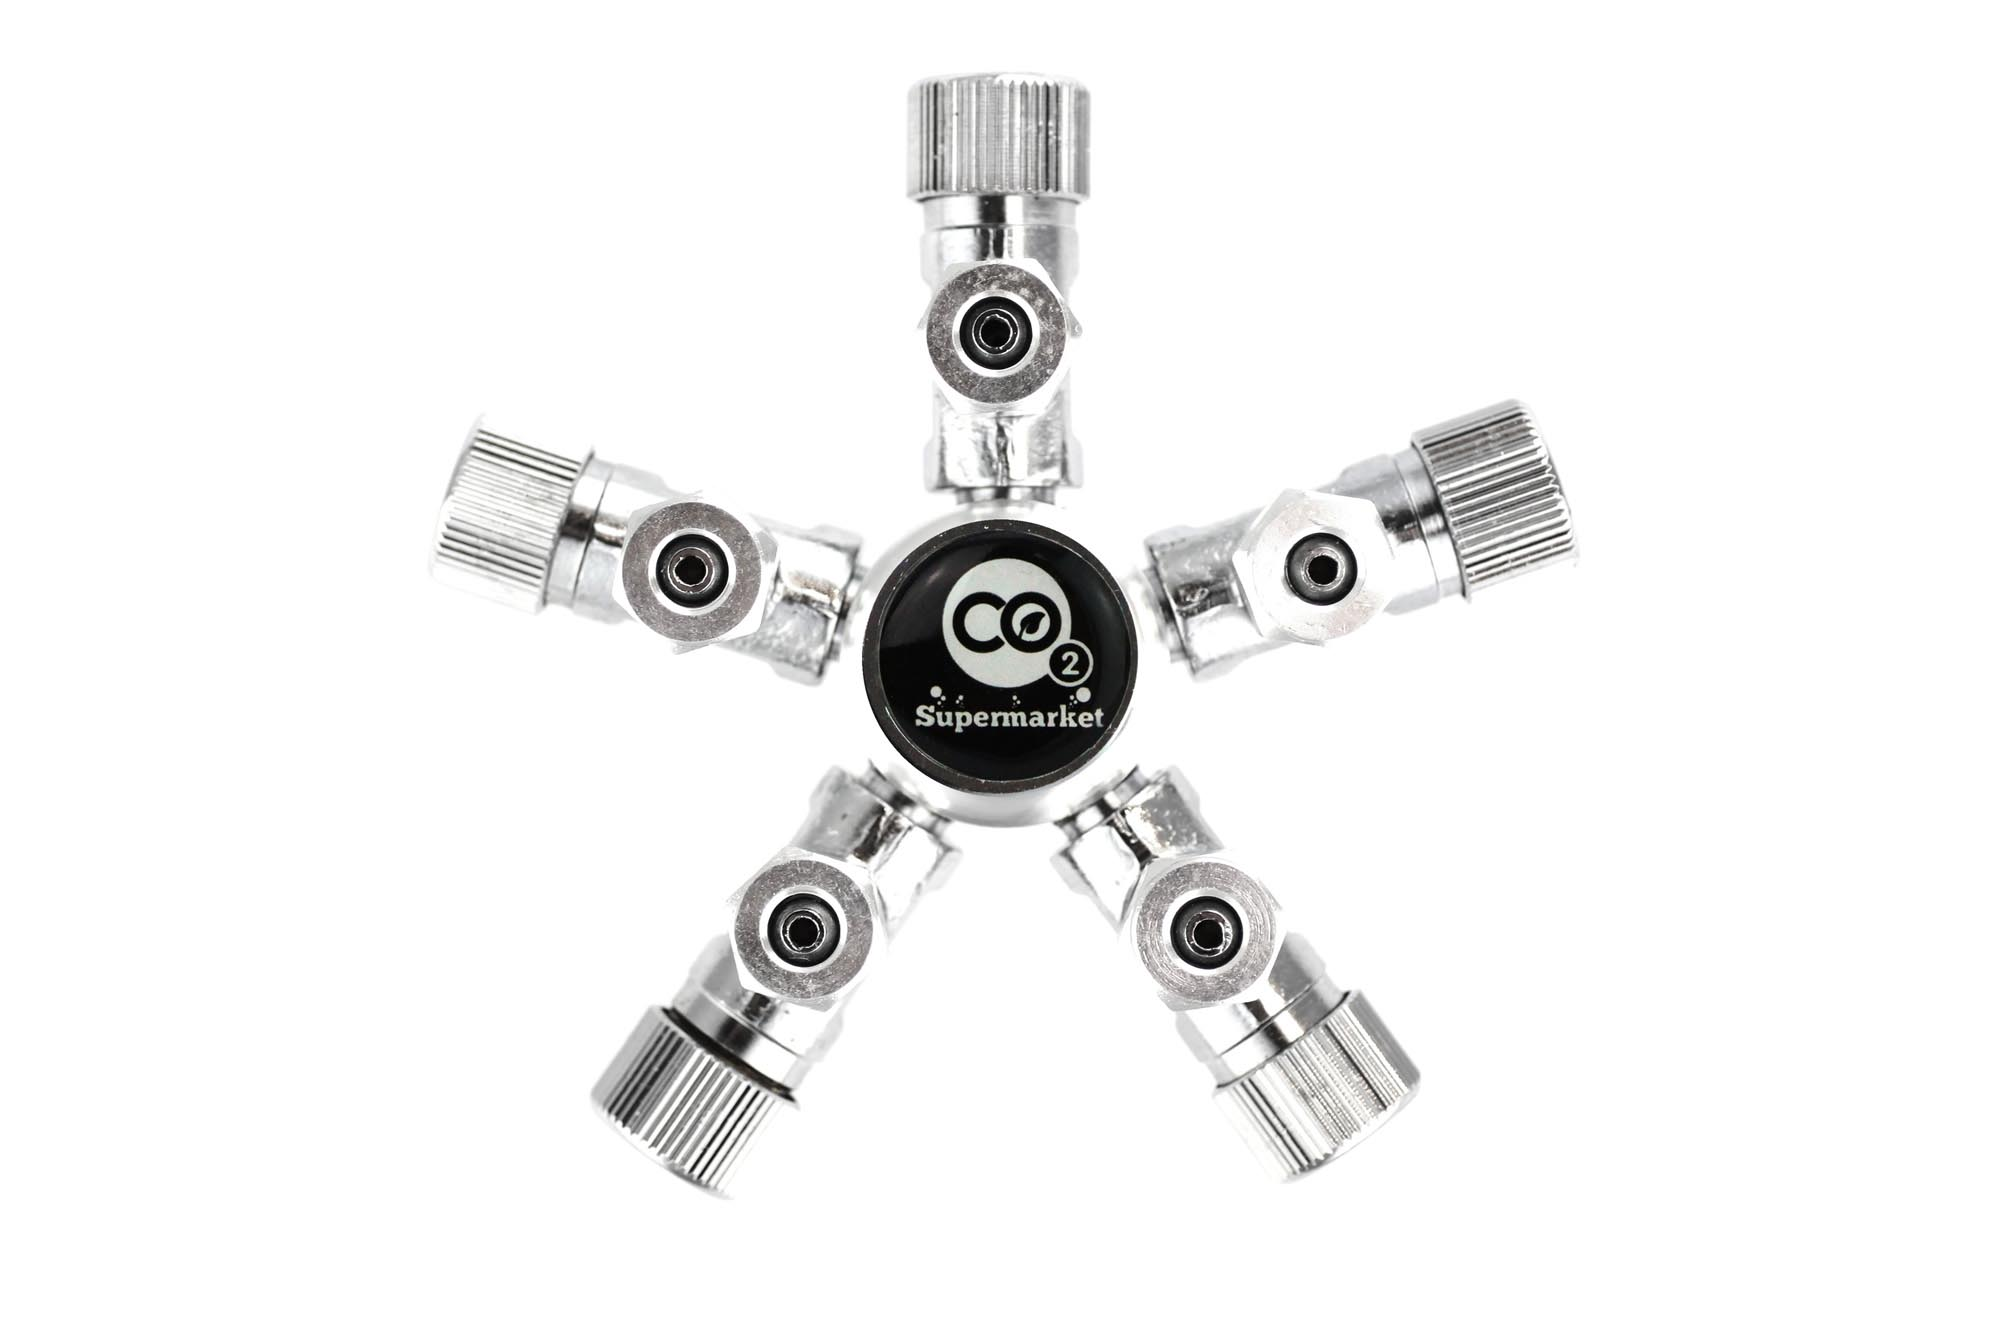 Aquarium 5 Way Co2 Splitter For Solenoid Or Regulator